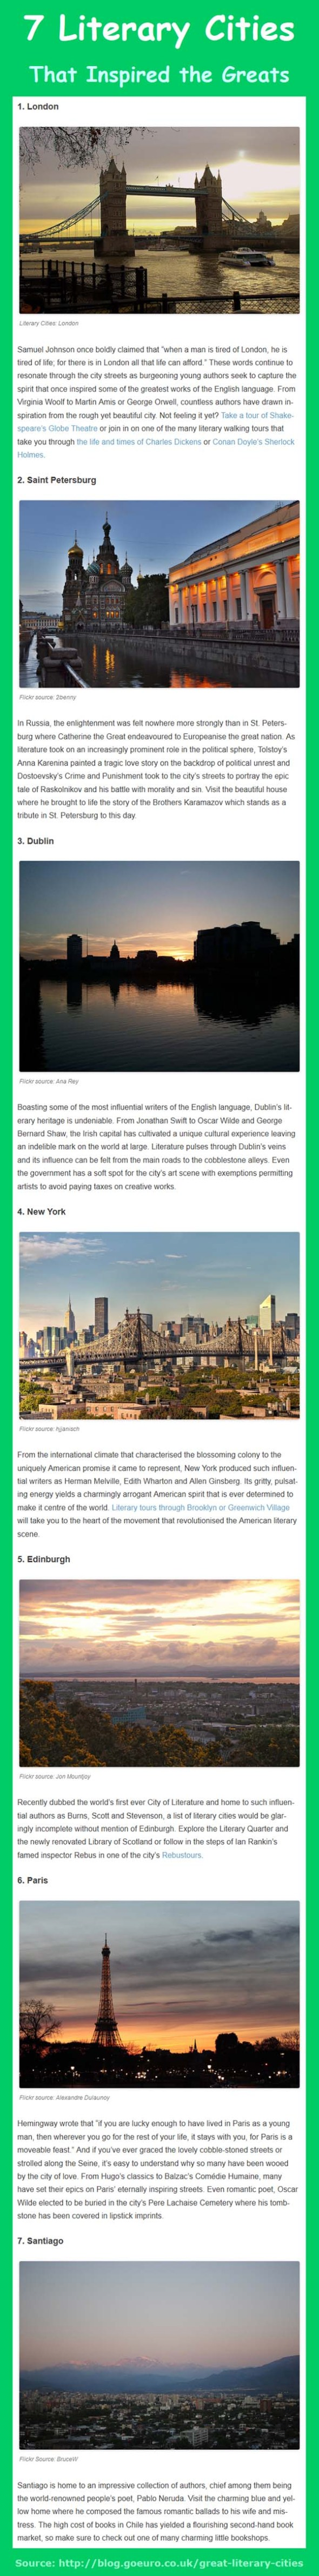 7 Literary Cities that inspired great writers